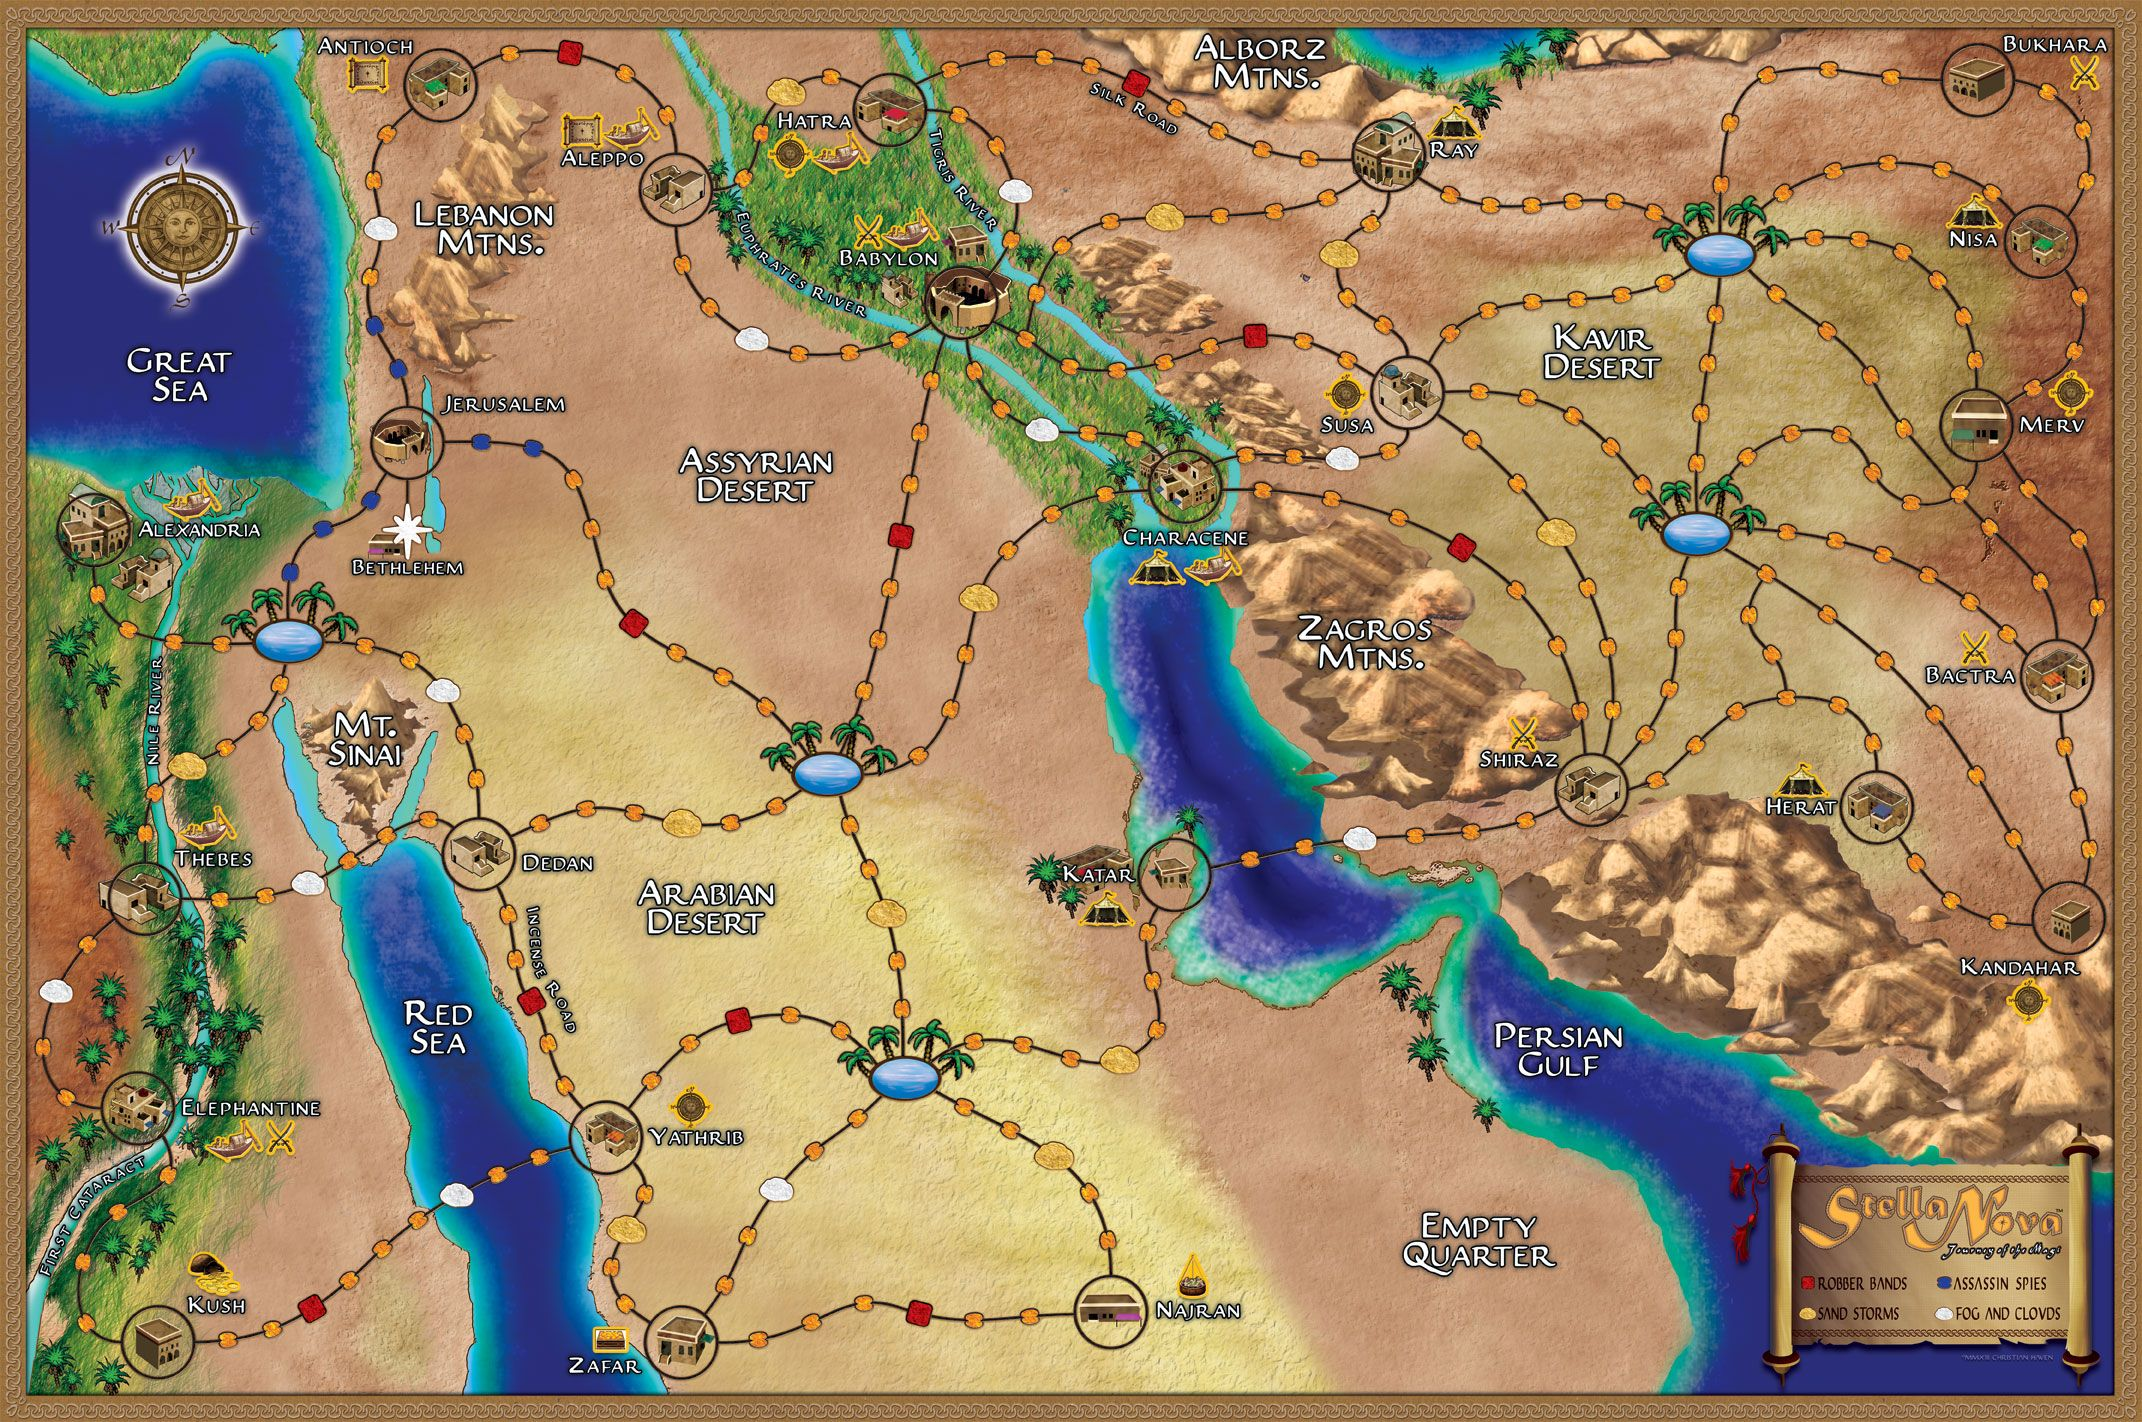 Map of the journey of the Magi | Awana | New christmas games ... Magi Map on robbers map, maginot line map, princess map, adventure map, google map, disney's map, mtg map, mavs map, mischief map,